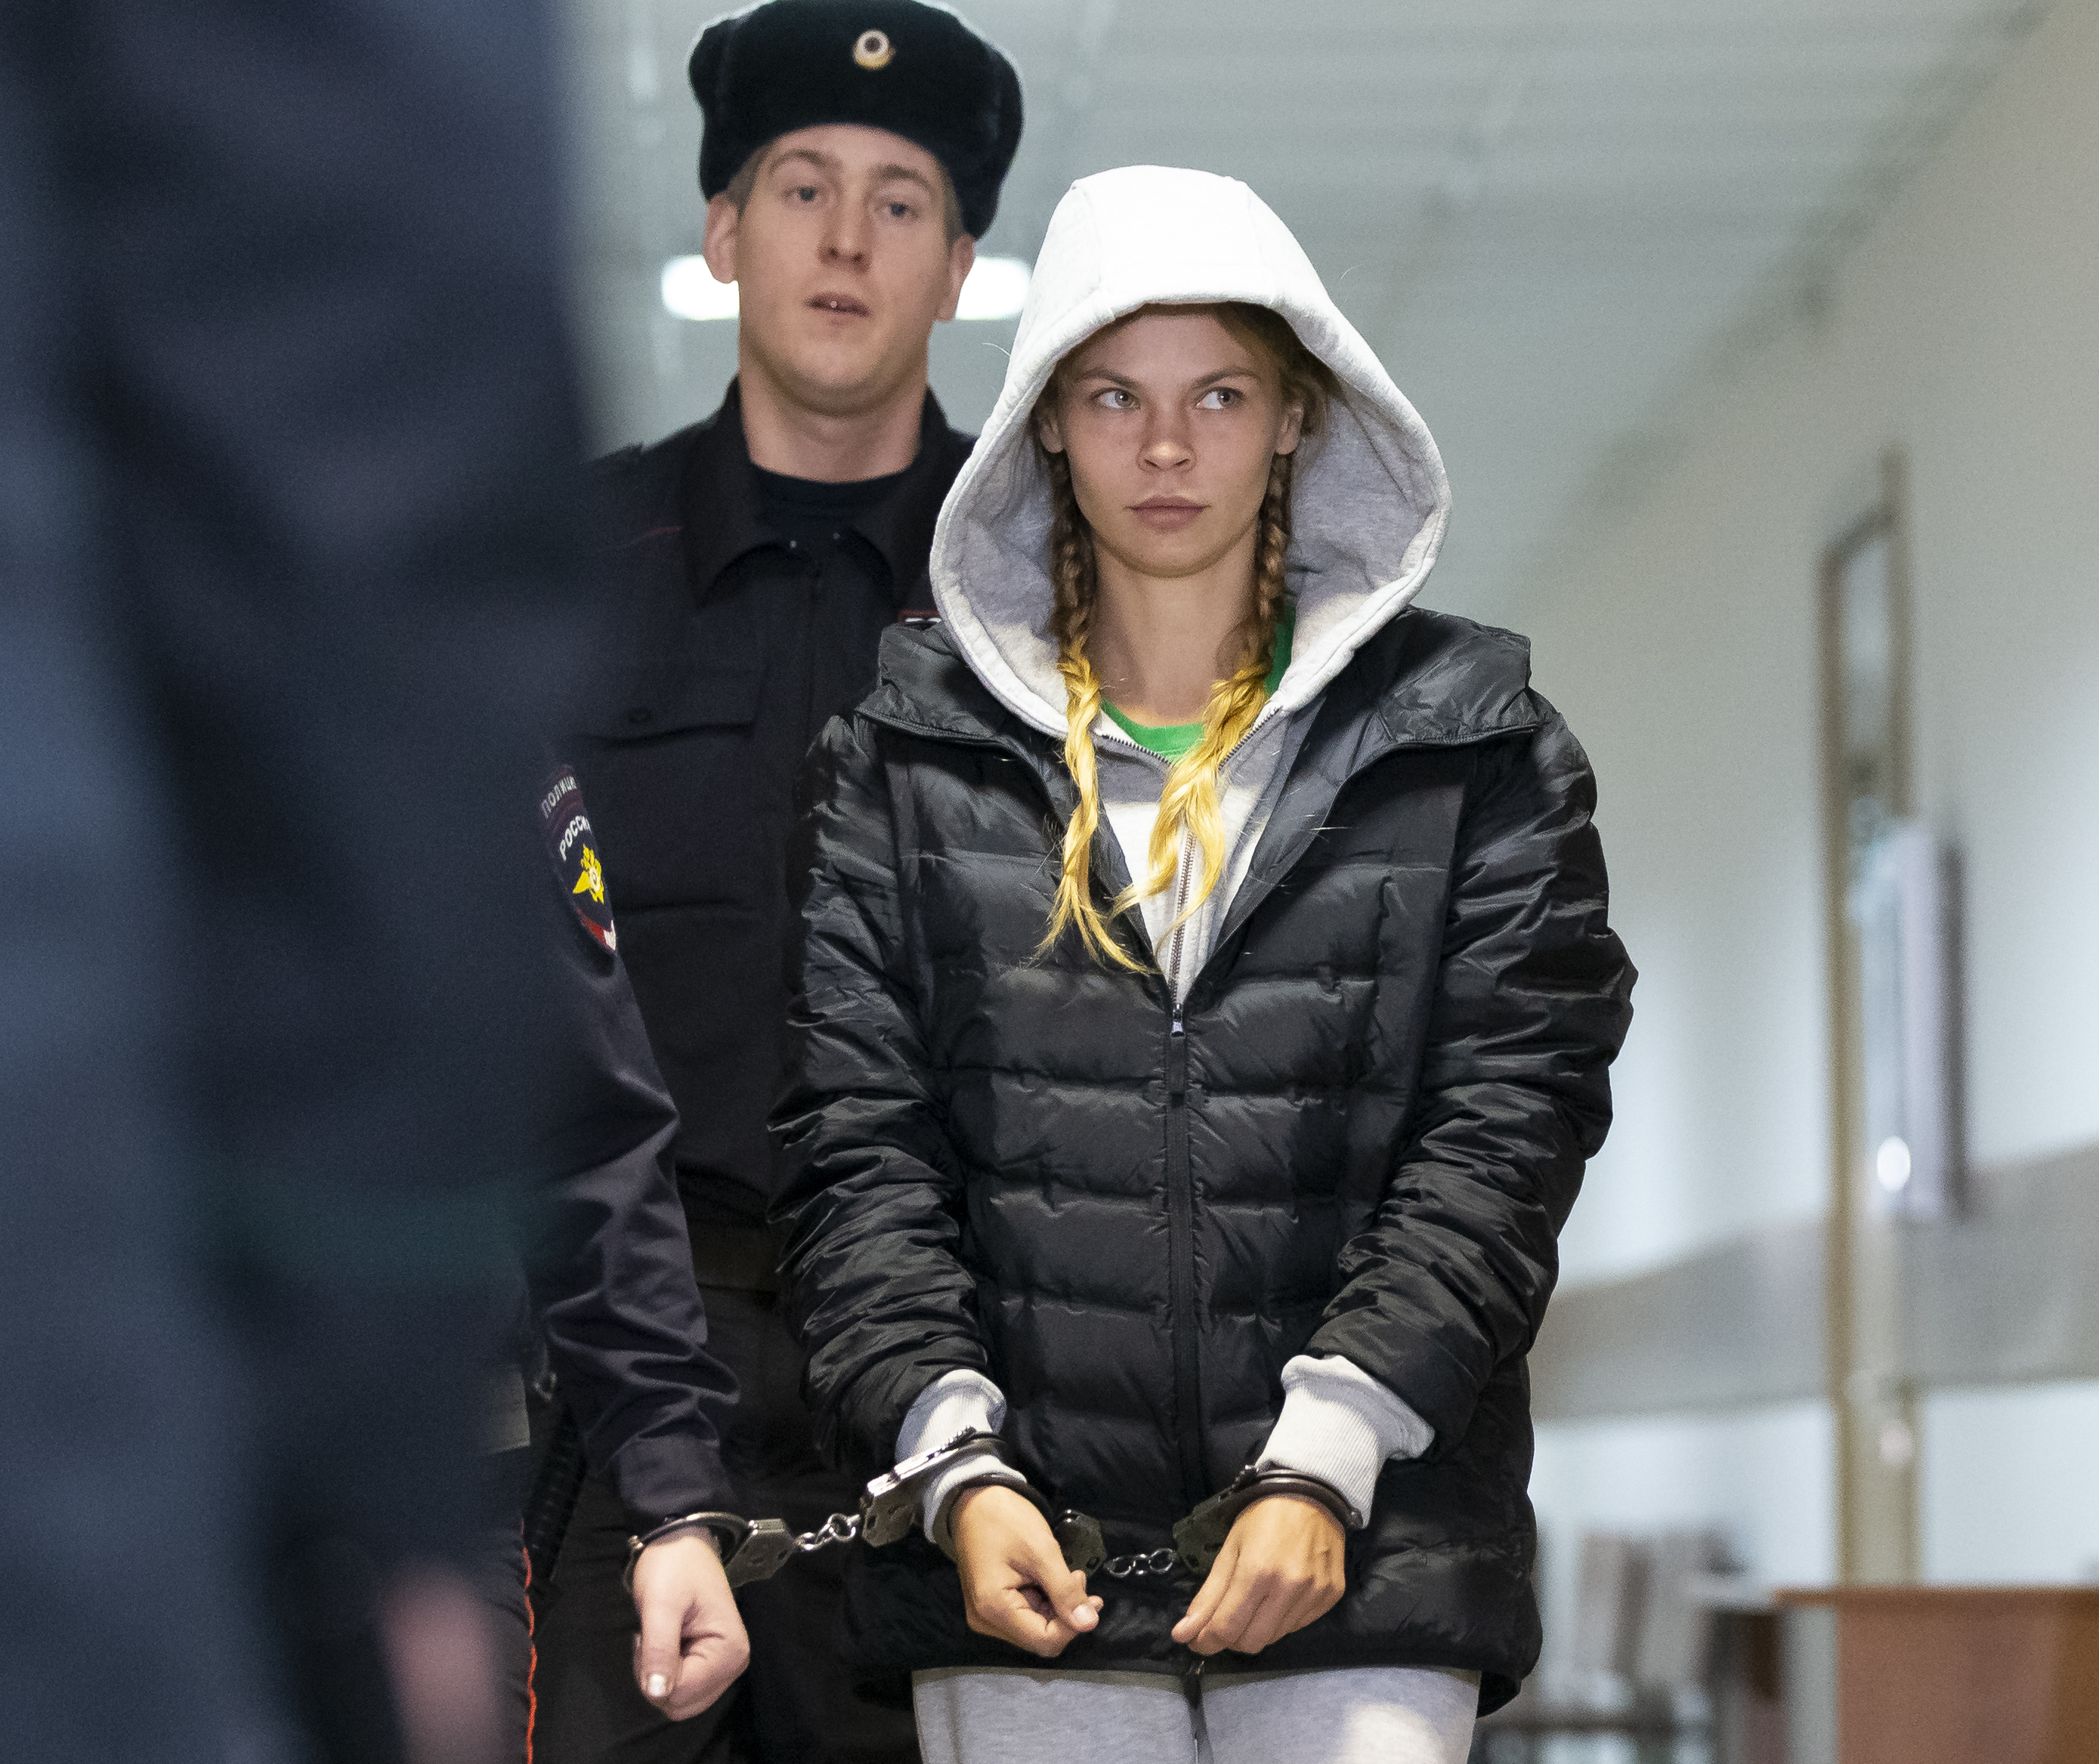 Anastasia Vashukevich, also known on social media as Nastya Rybka is escorted in the court room in Moscow, Russia, Saturday, Jan. 19, 2019. The Belarusian model Vashukevich, who claimed last year that she had evidence of Russian interference in the election of Donald Trump as U.S. president, was arrested upon arrival in Moscow on Thursday following deportation from Thailand. (AP Photo/Alexander Zemlianichenko)